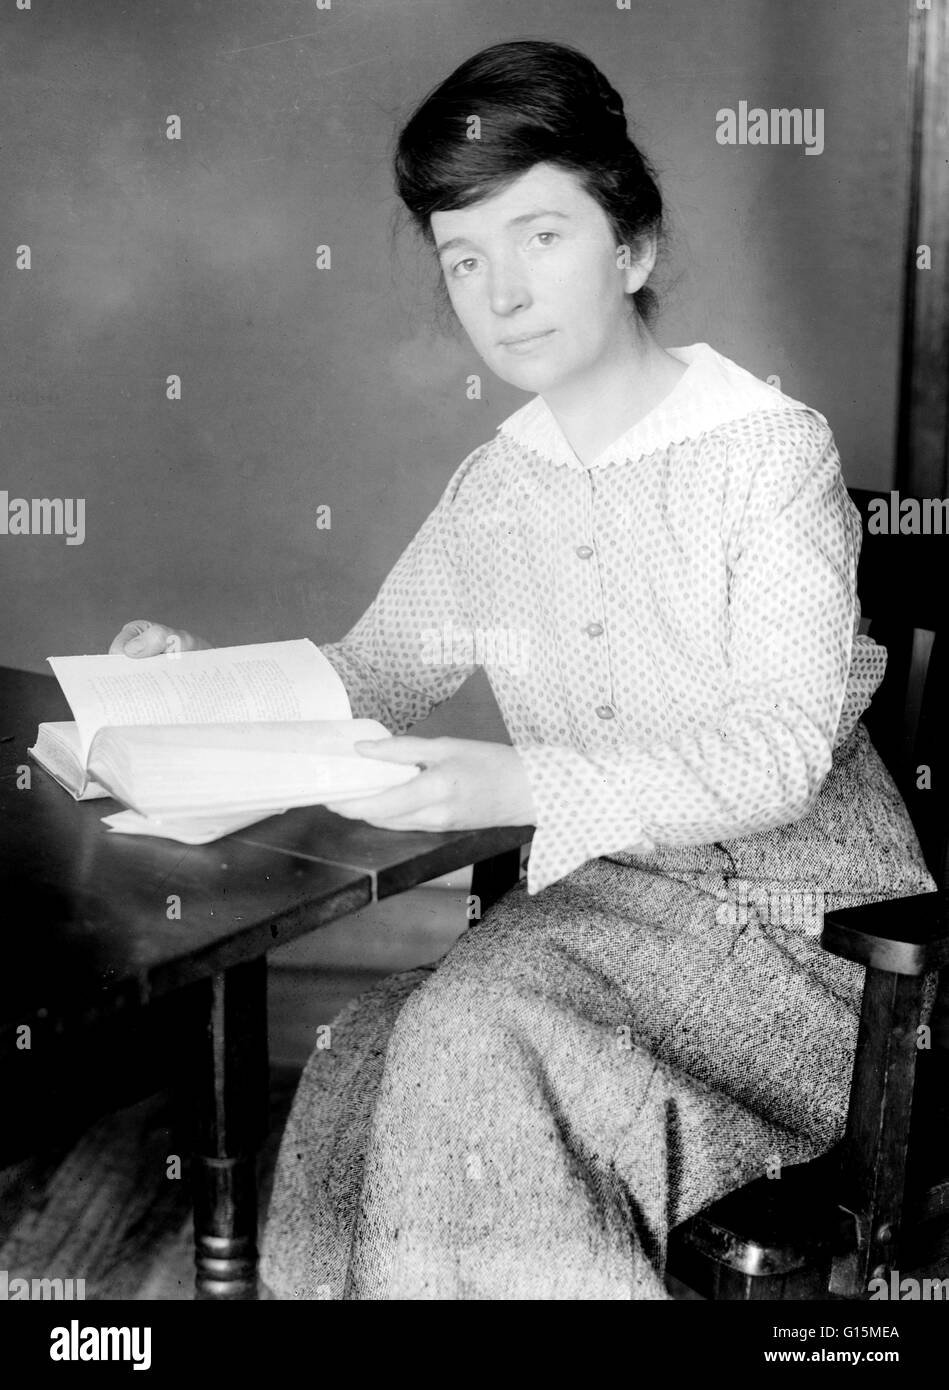 Margaret Louise Higgins Sanger (1879-1966) was an American social reformer and birth control advocate. When Sanger's - Stock Image